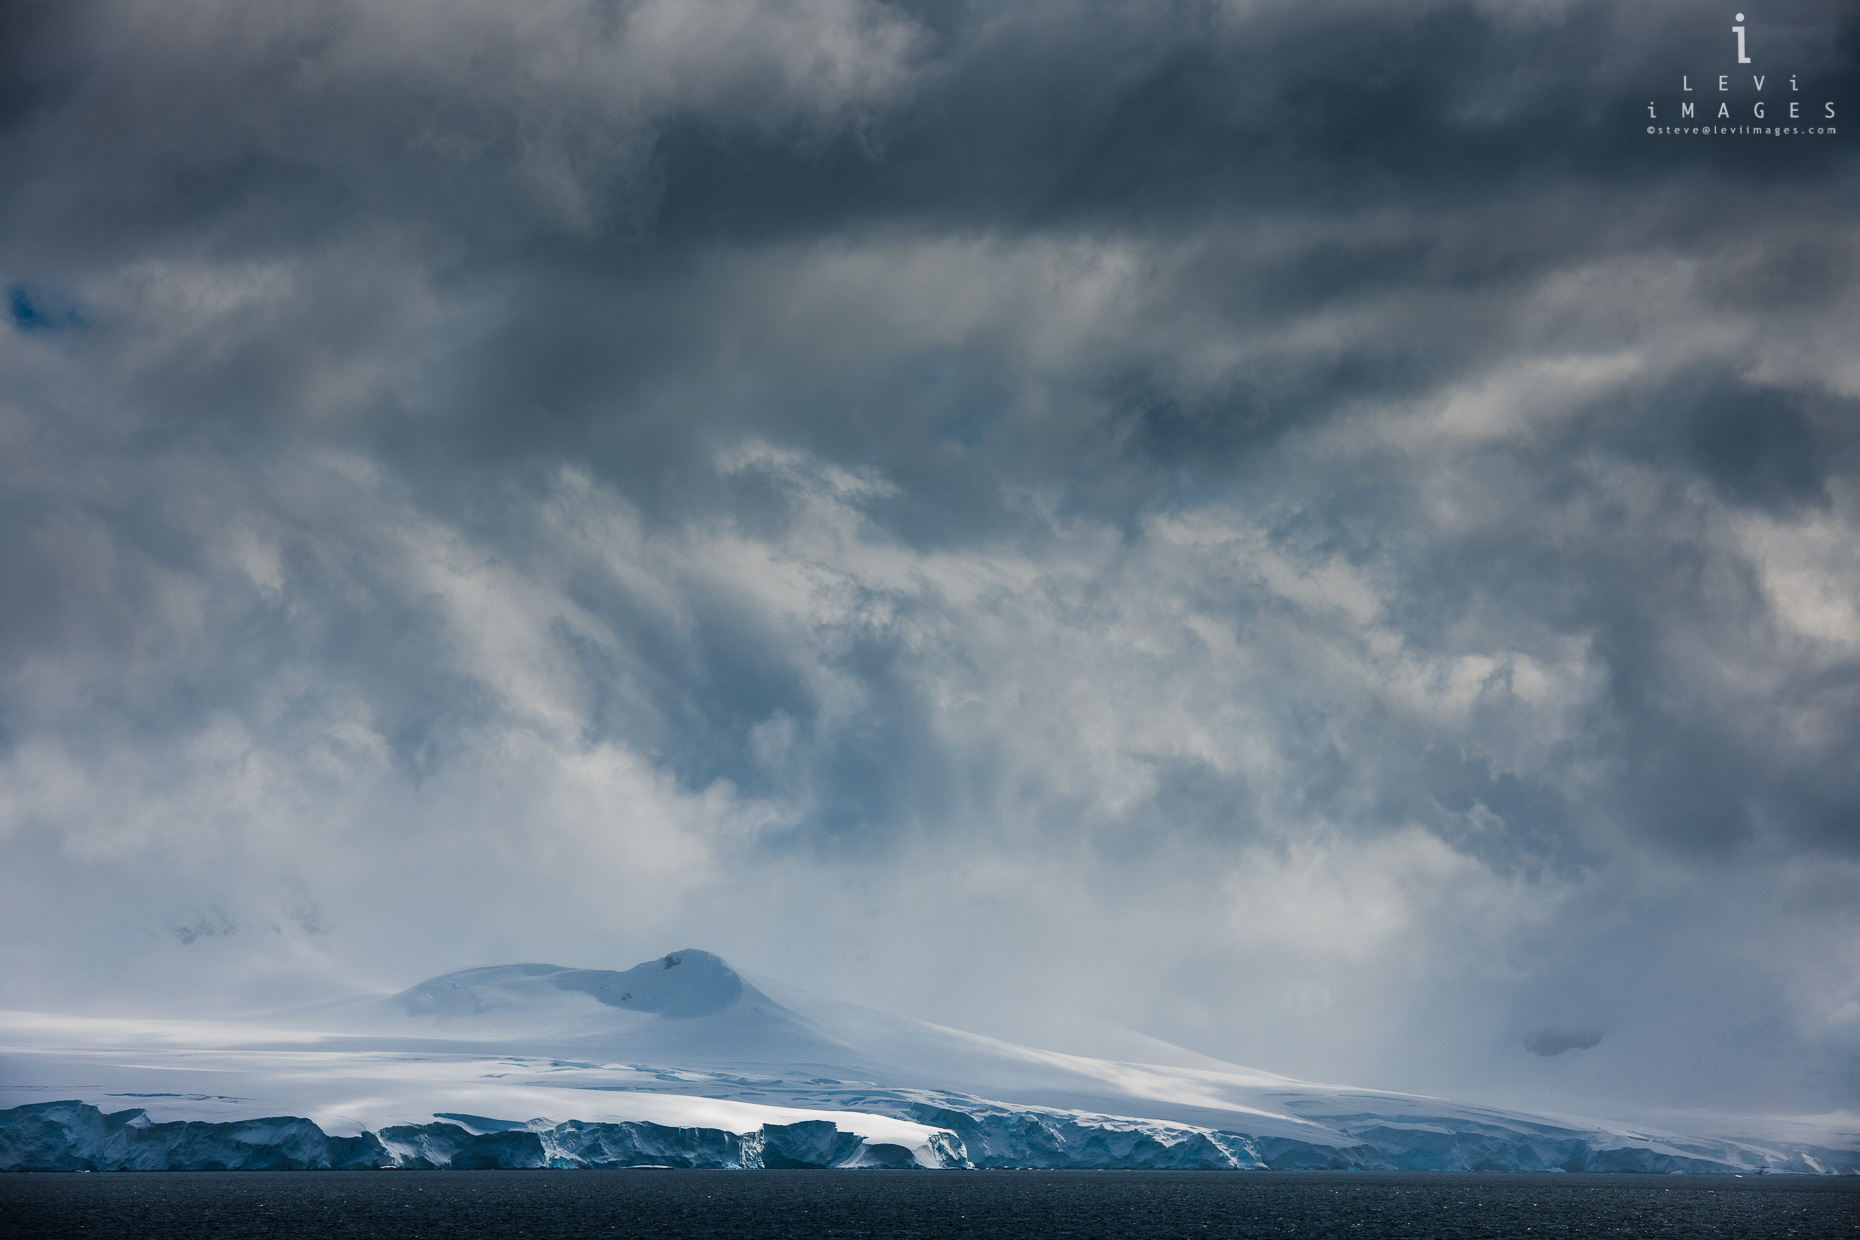 Frozen antarctic landscape with dramatic clouds. Antarctica